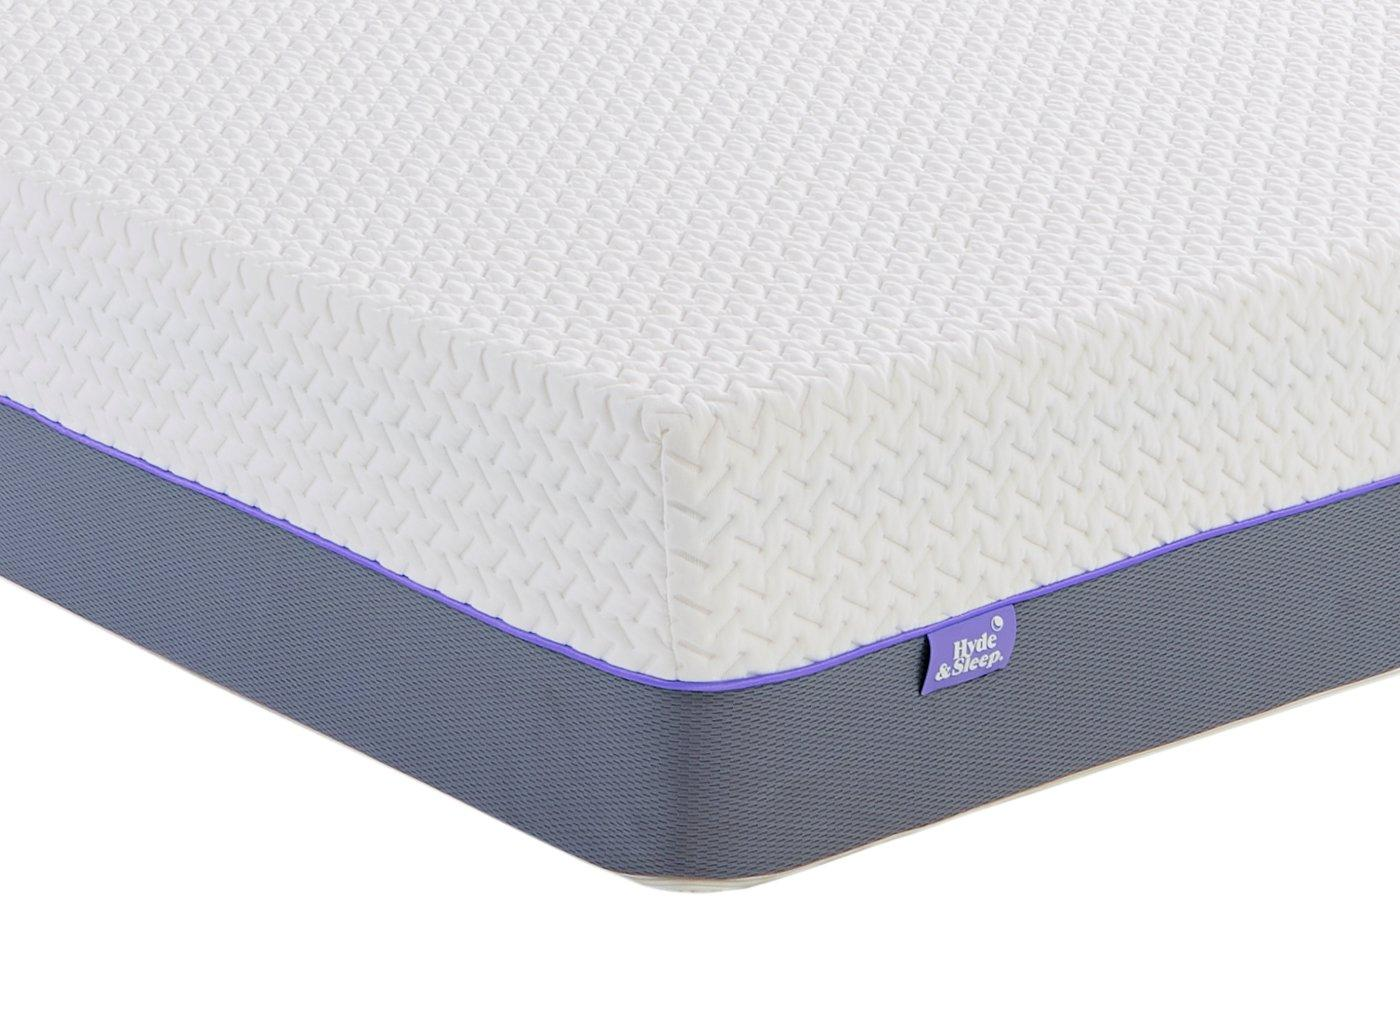 hyde---sleep-lilac-memory-foam-mattress